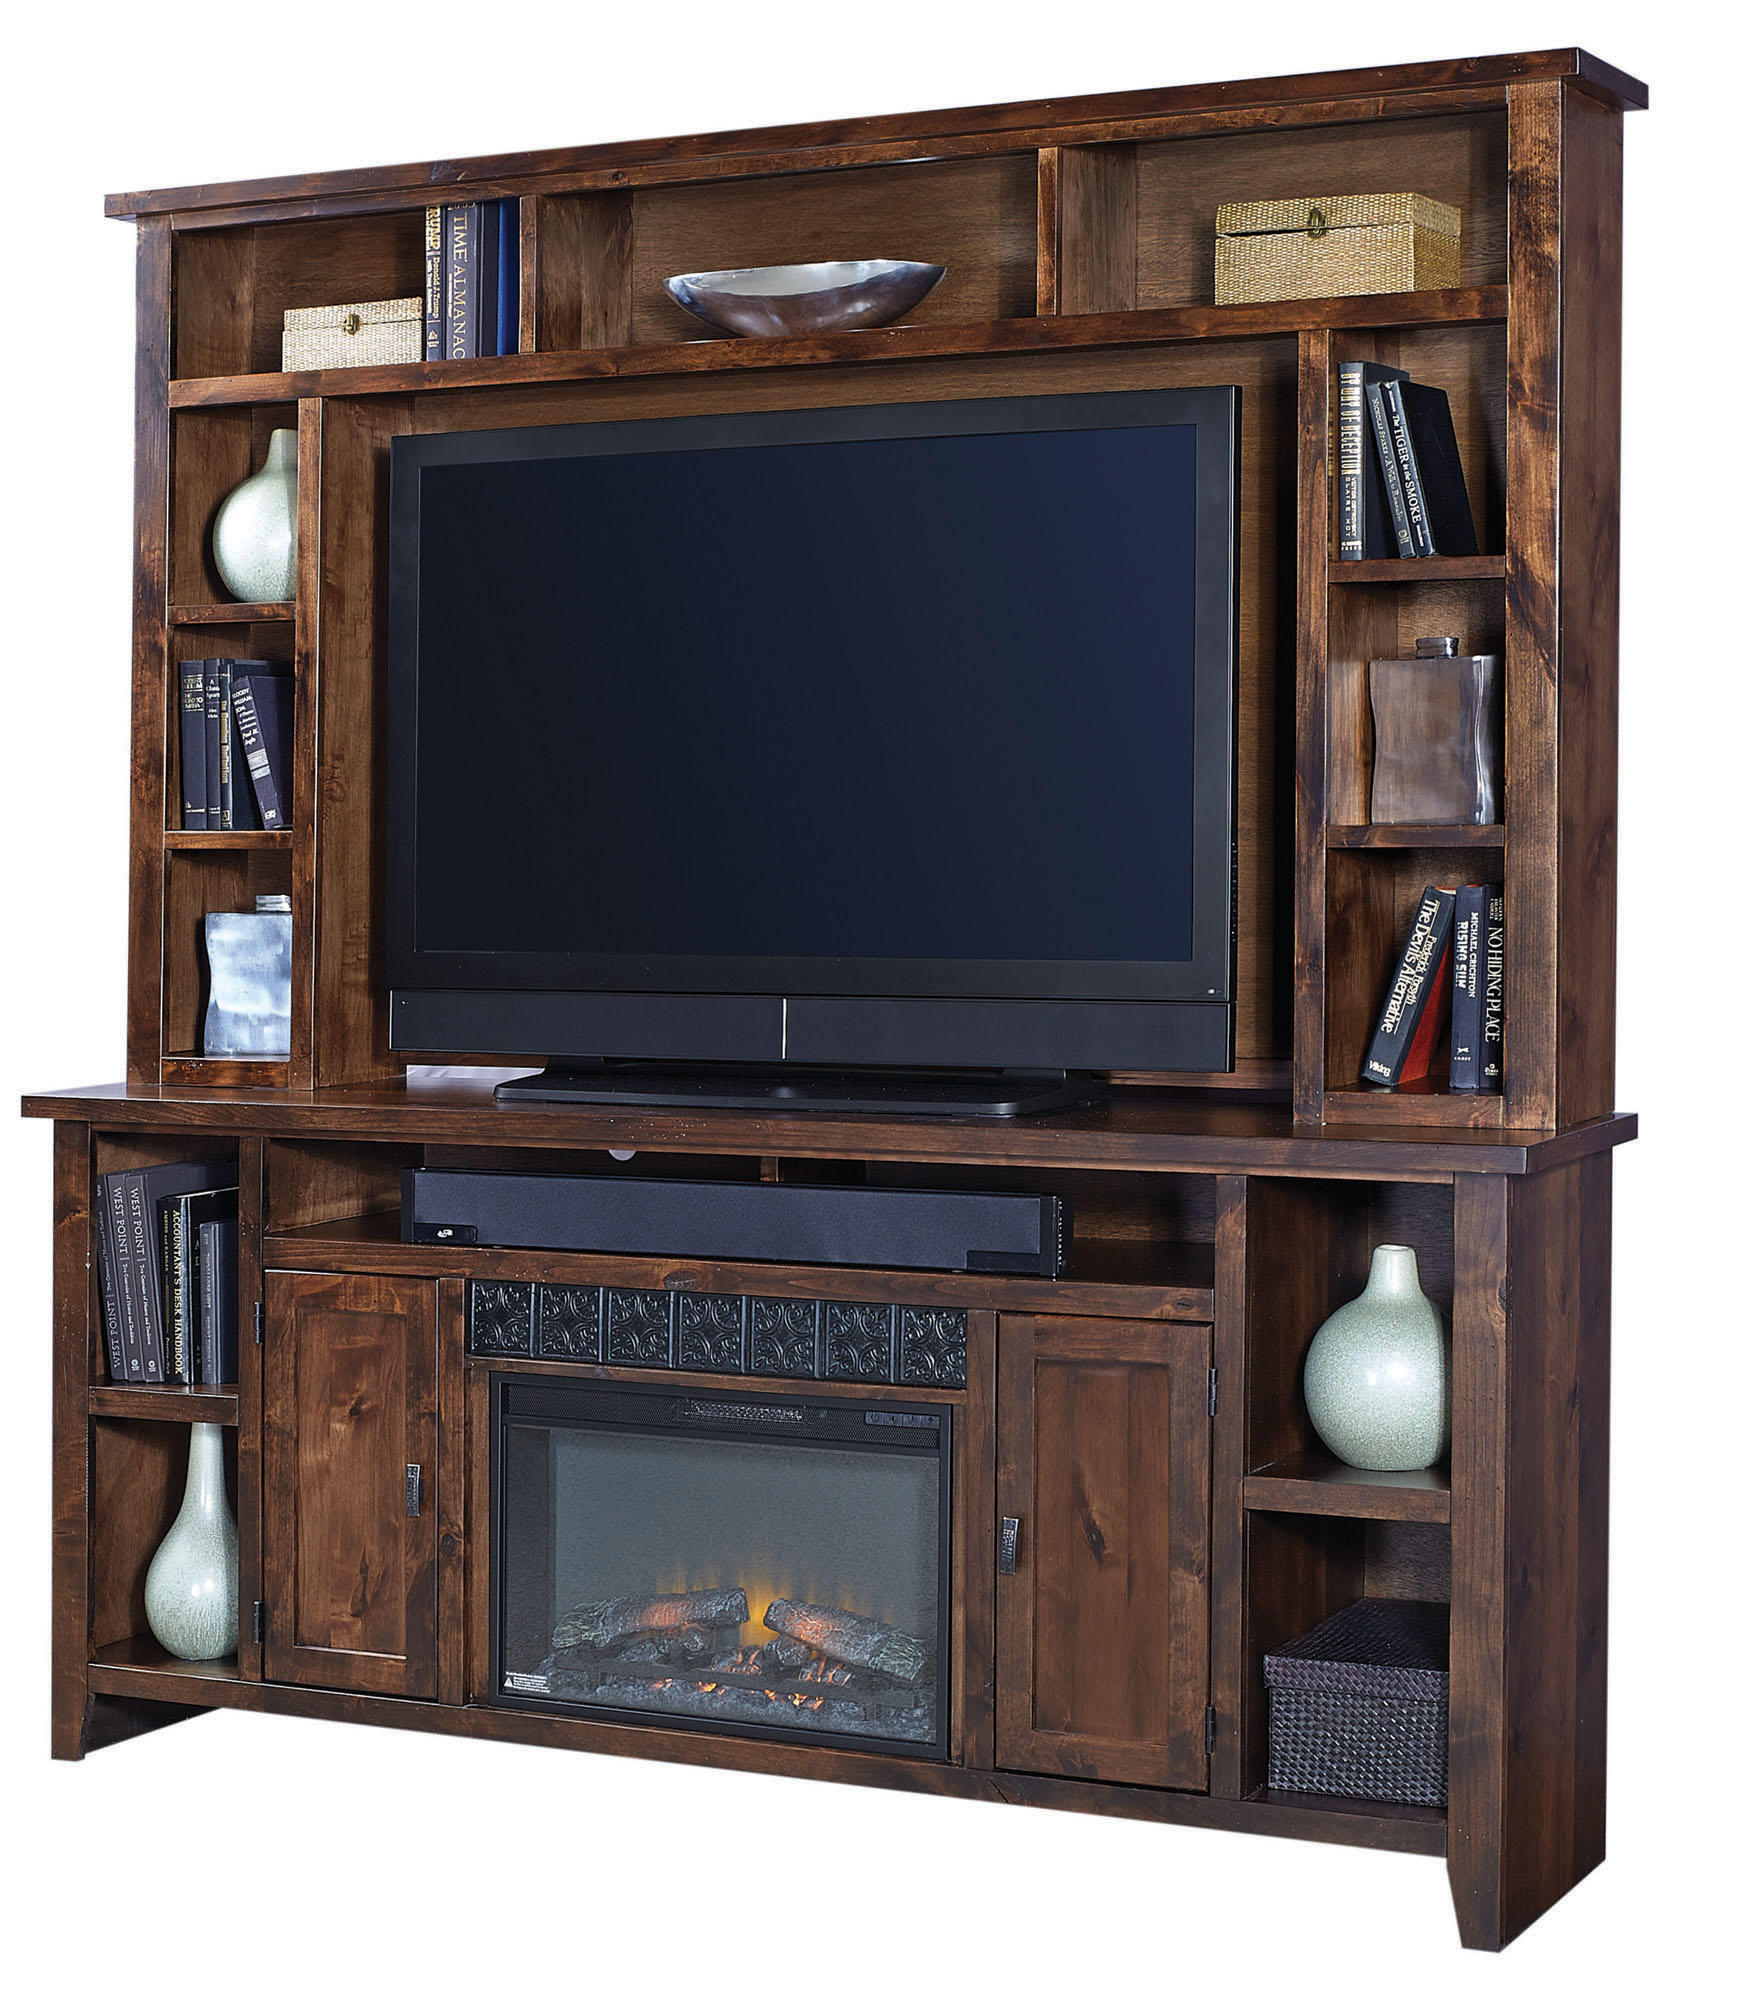 84 Quot Fireplace Console W Hutch Aspen Home Home Gallery